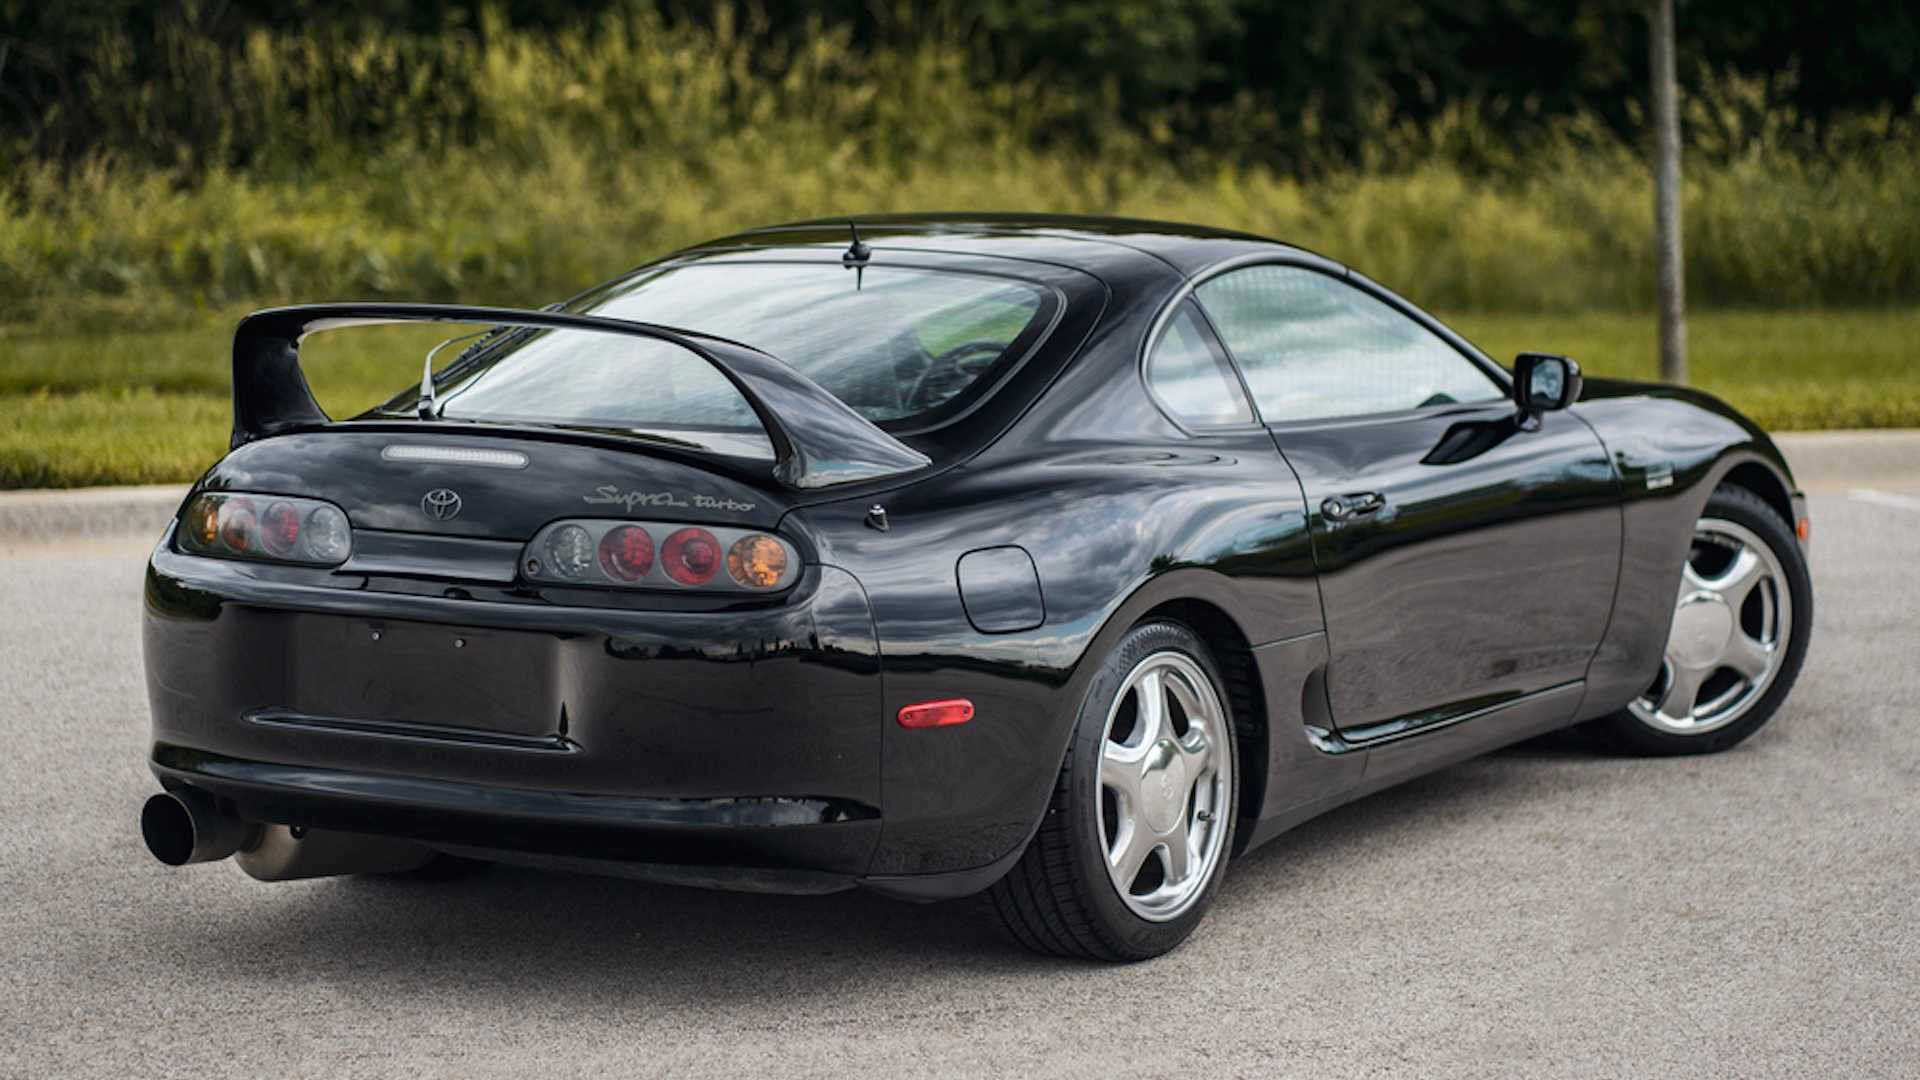 1997-toyota-supra-sold-for-176-000-at-auction.jpg